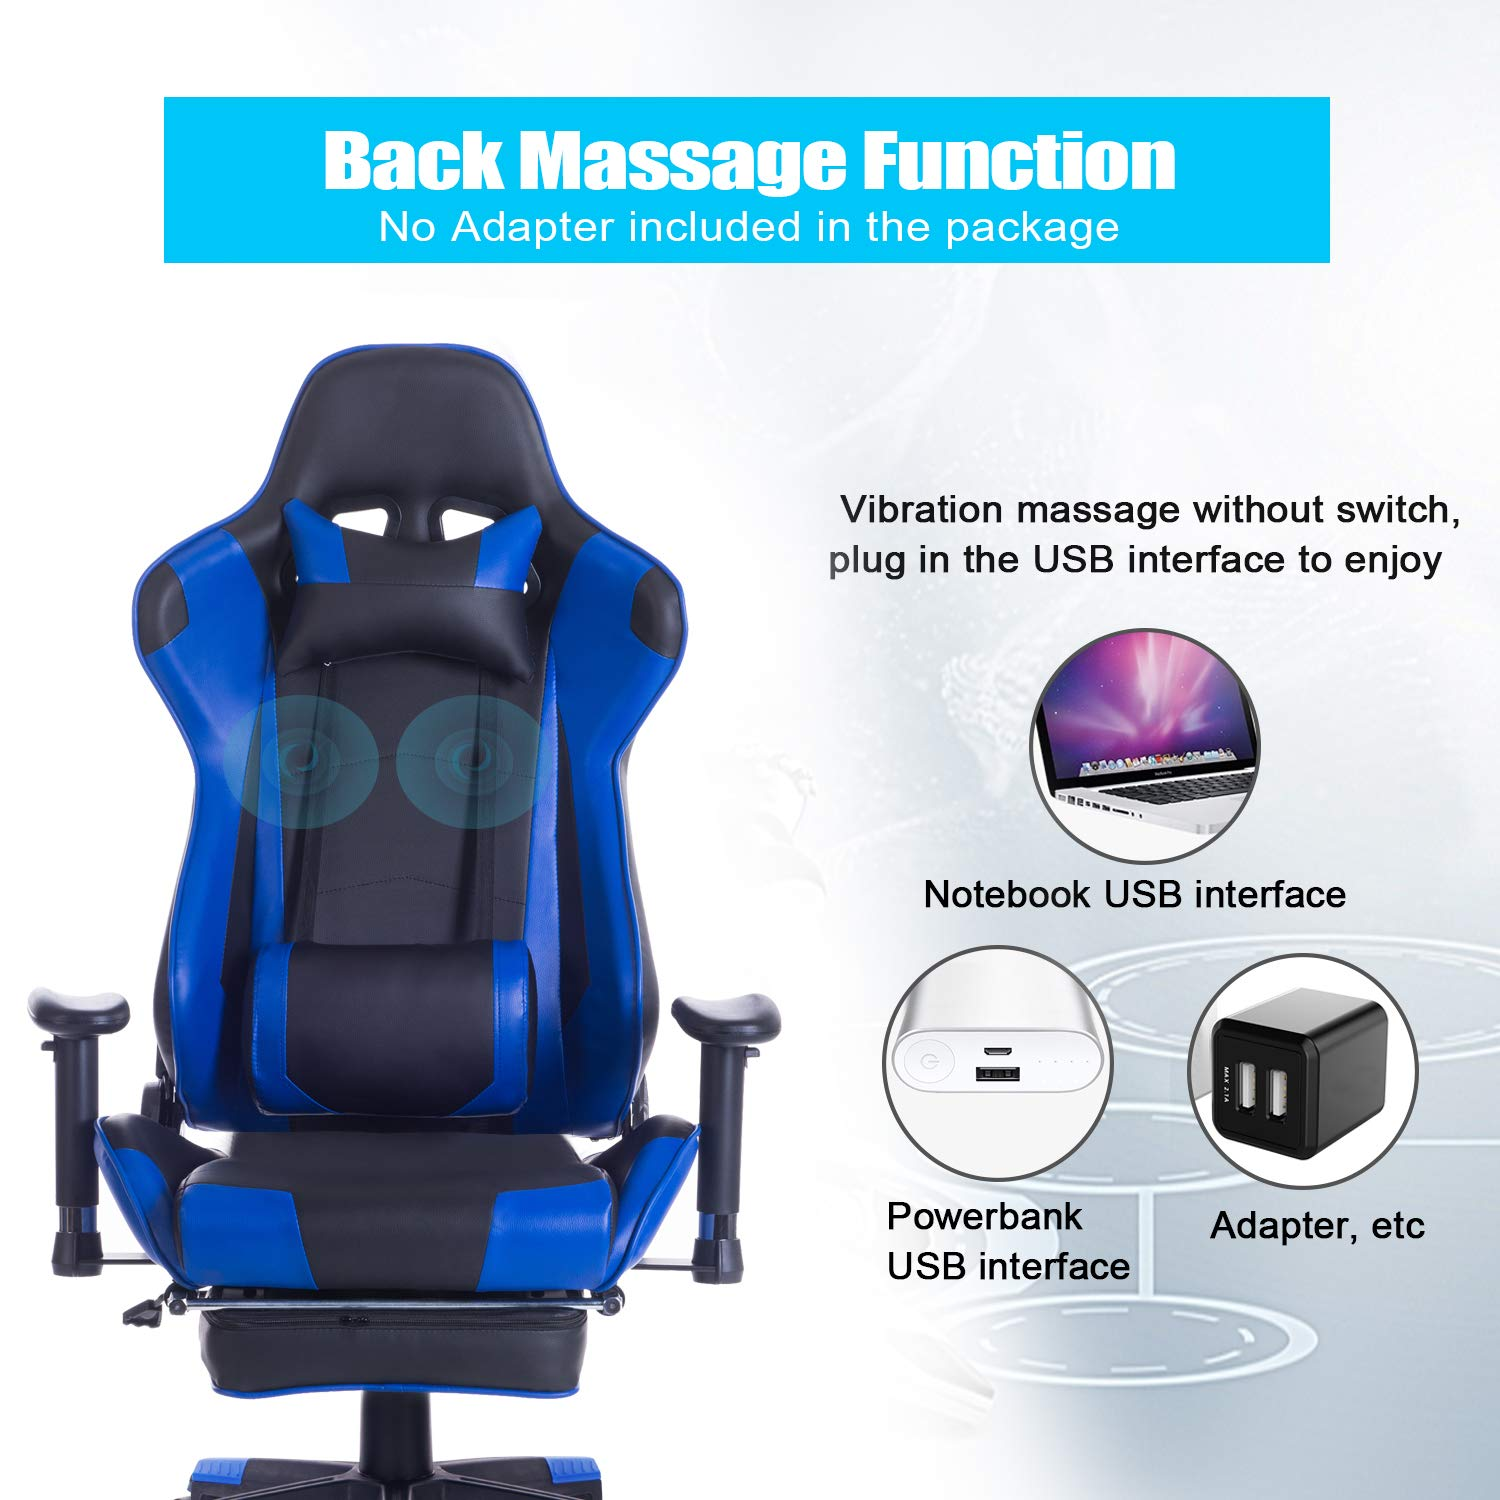 HEALGEN Back Massage Gaming Chair with Footrest,PC Computer Video Game Racing Gamer Chair High Back Reclining Executive Ergonomic Desk Office Chair with Headrest Lumbar Support Cushion GM002 Blue